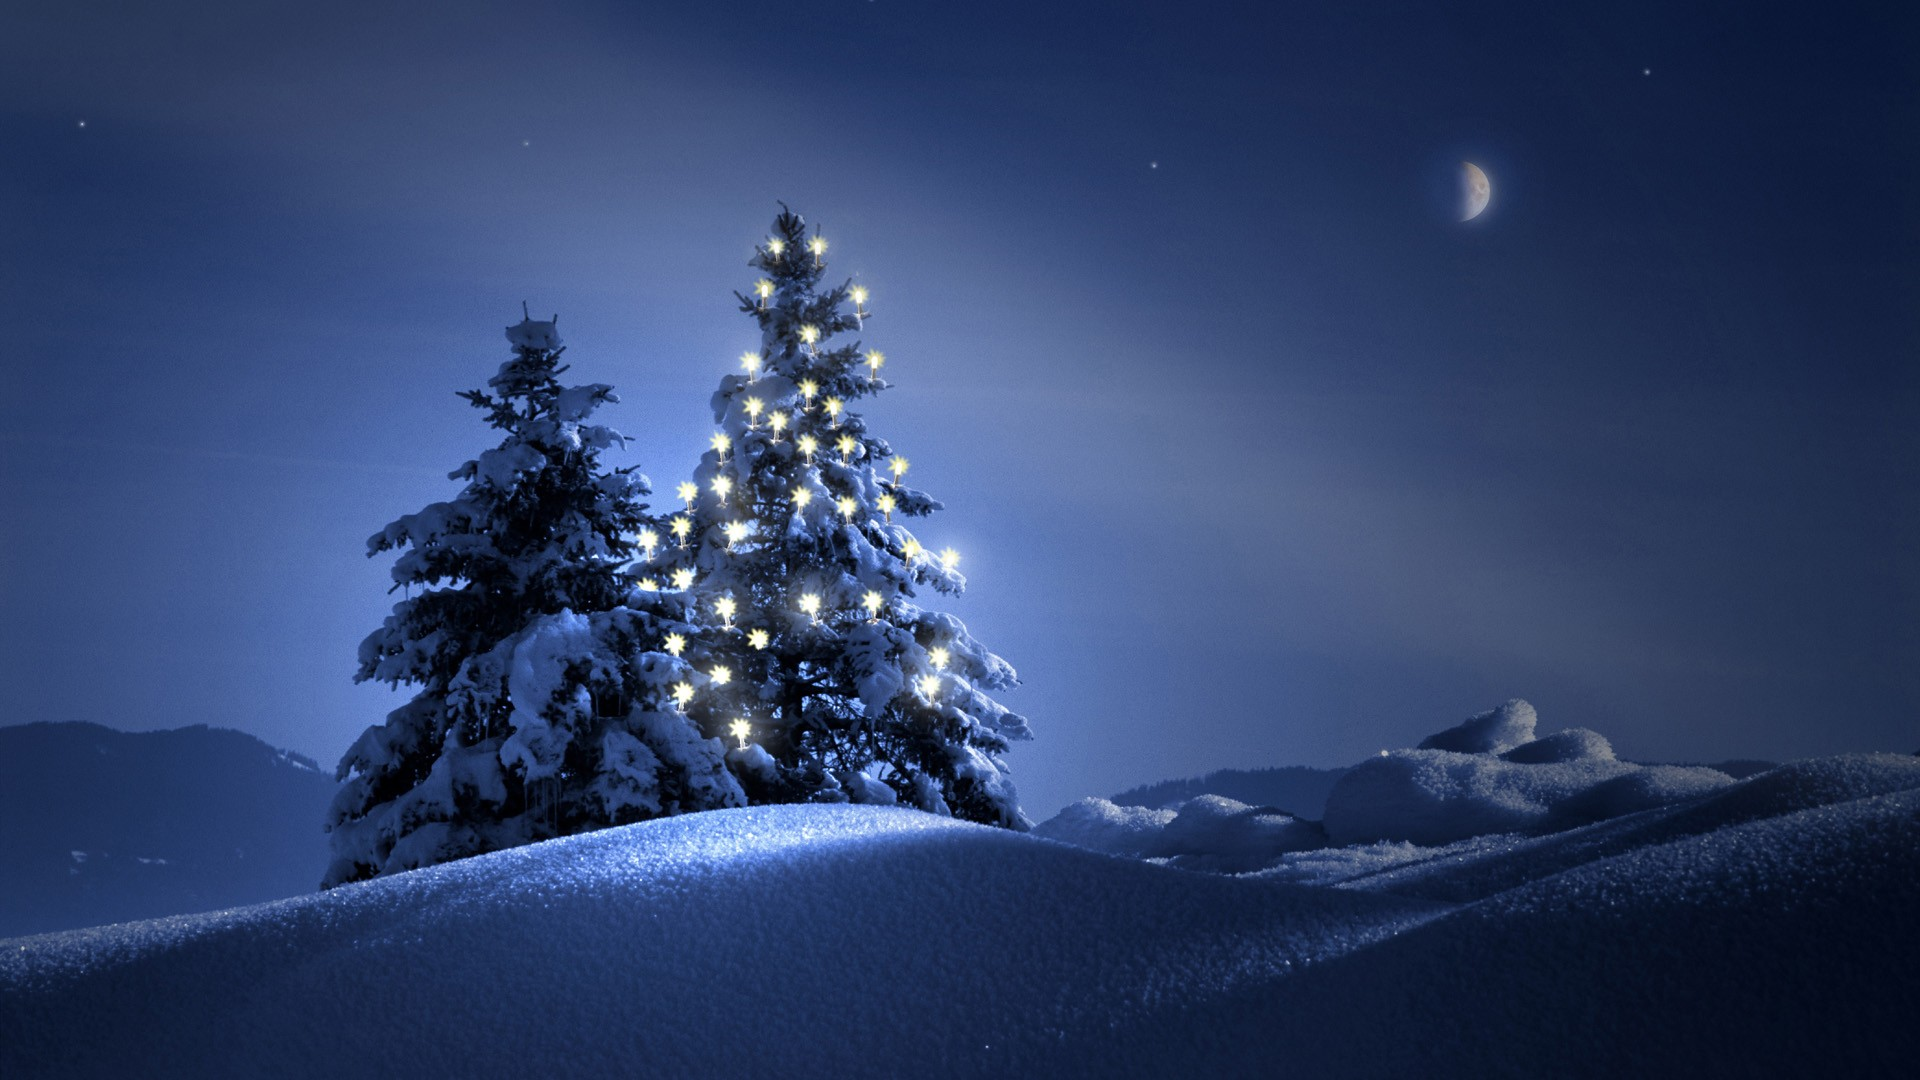 Christmas-Trees-Wallpaper-Backgrounds-1